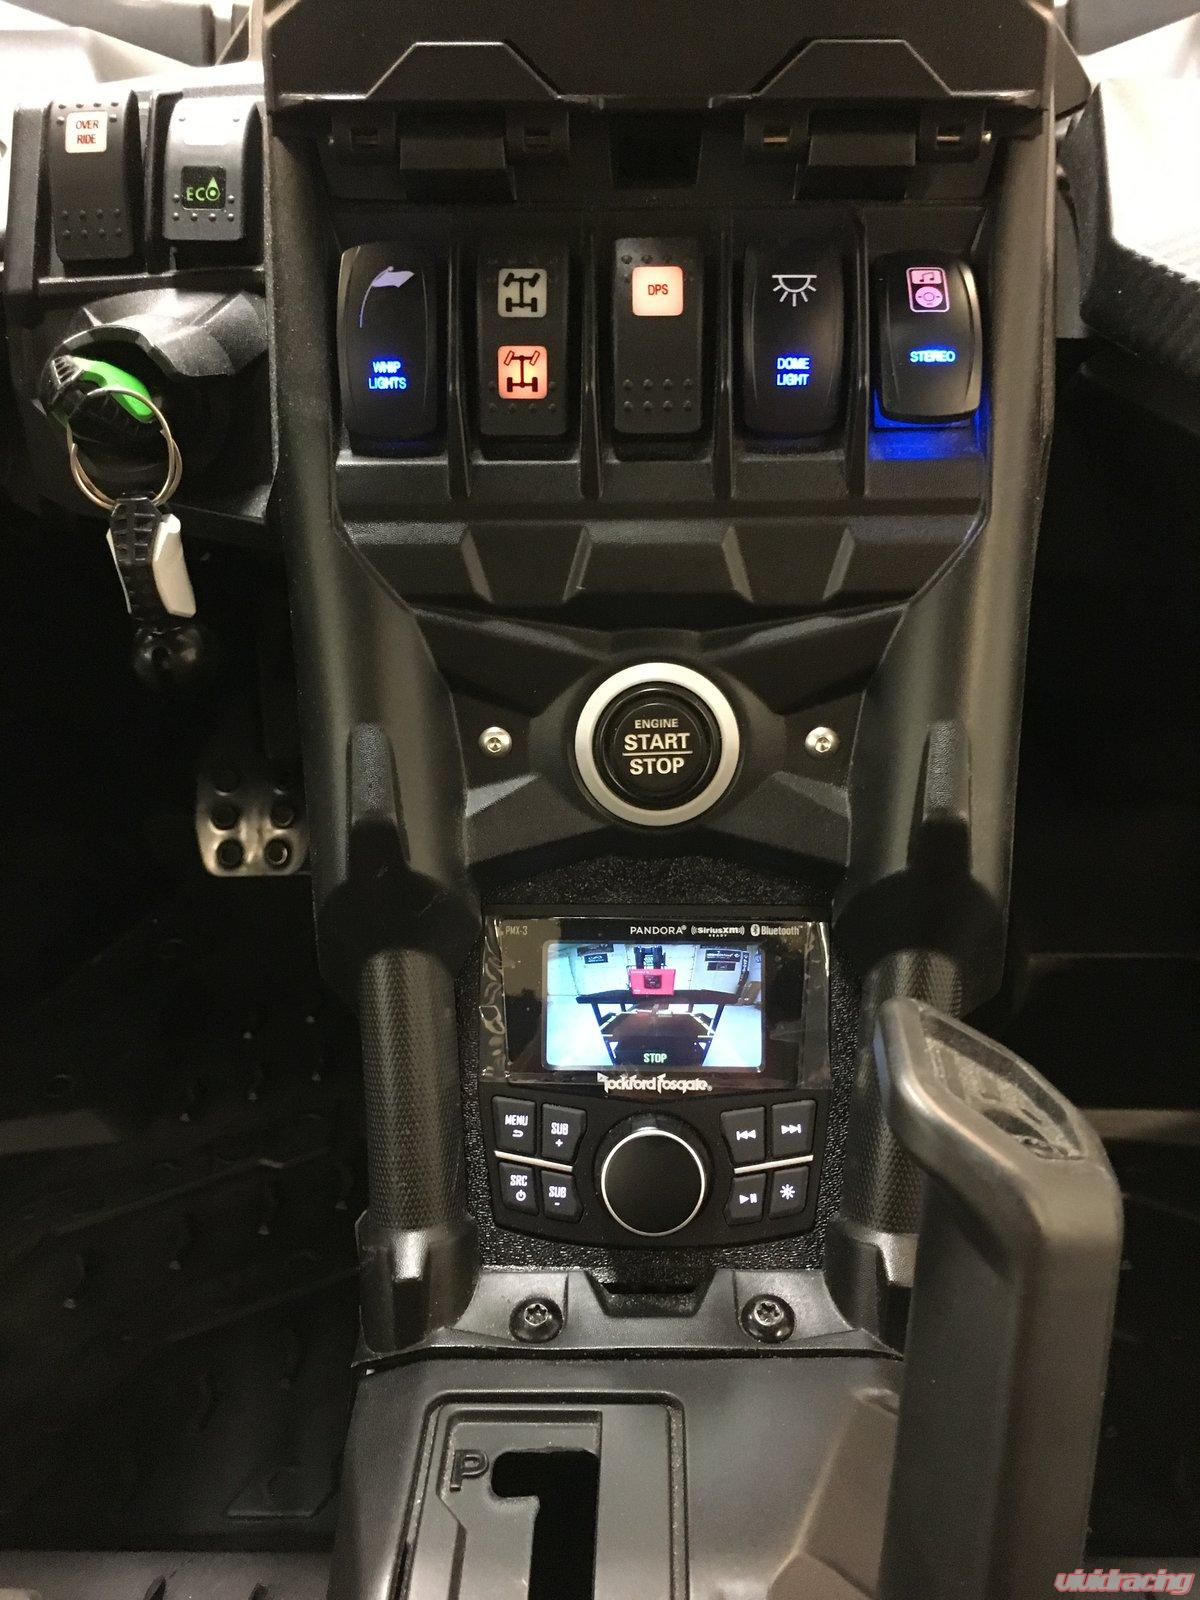 Utv Stereo 6 Speaker System W Deck Power Can Am Maverick X3